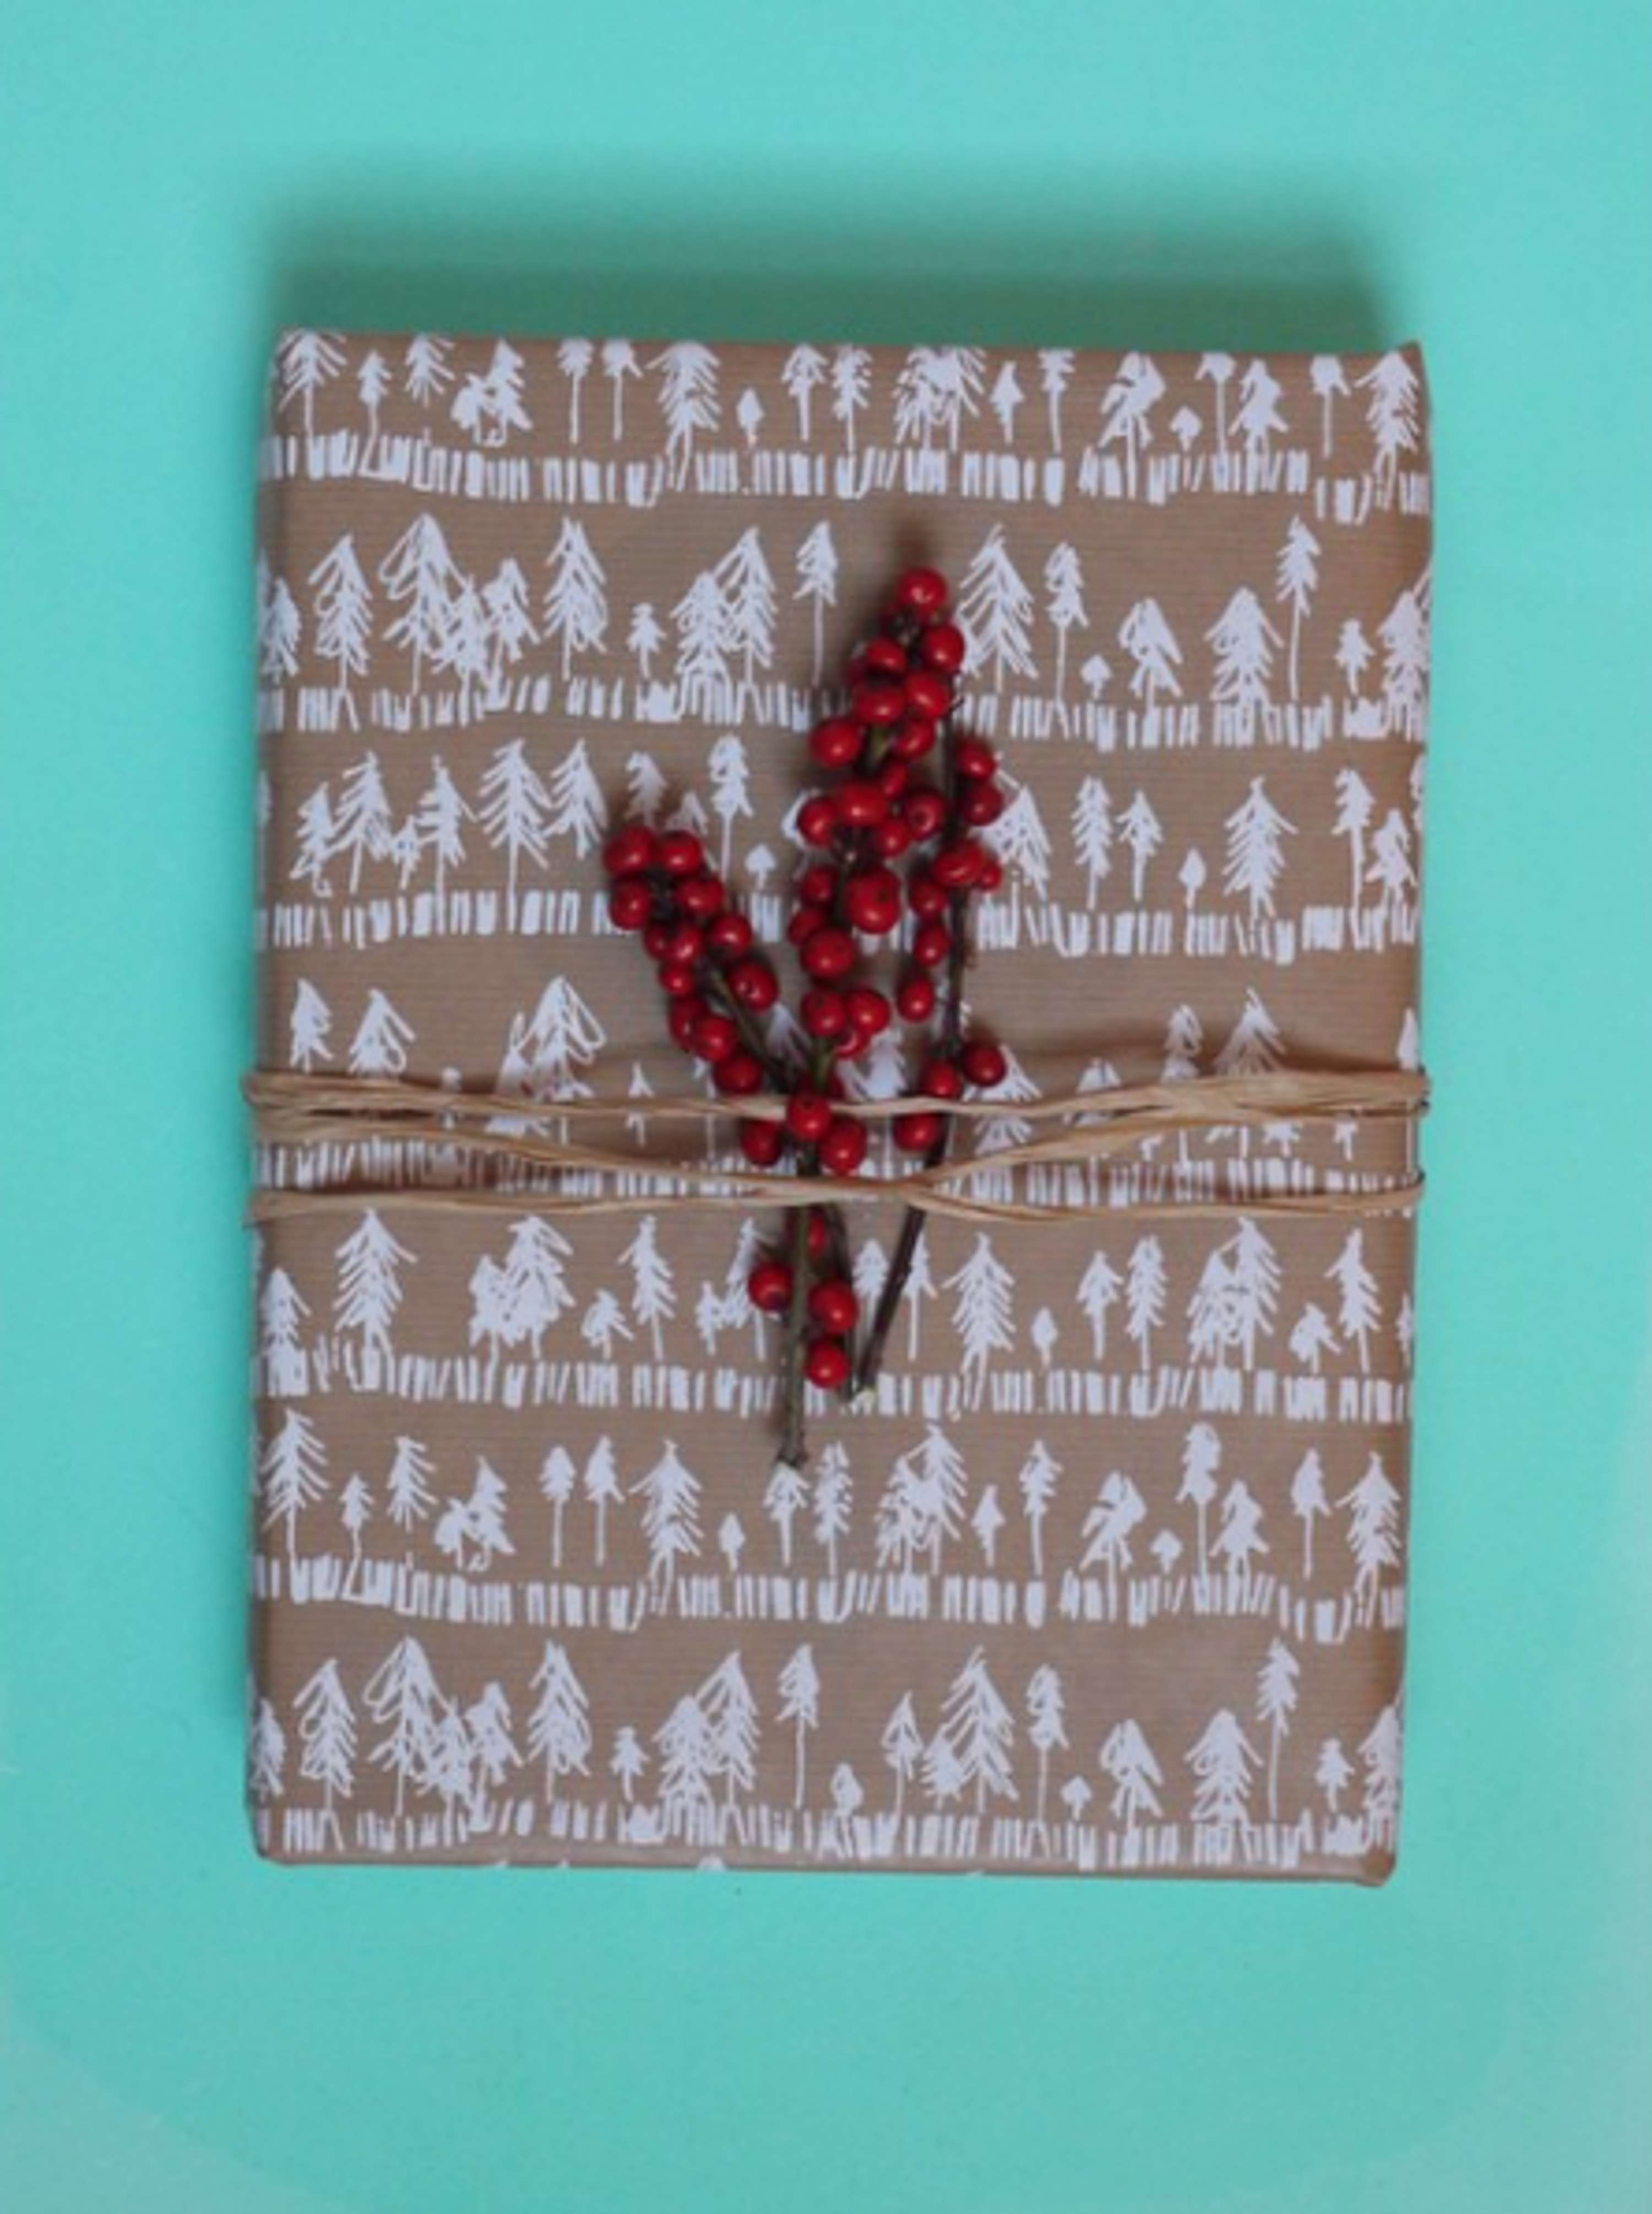 Two different Christmas patterns designed for Paperchase and used across a range of stationery; wrapping paper, gift bags, gift tags, cards and gift boxes.